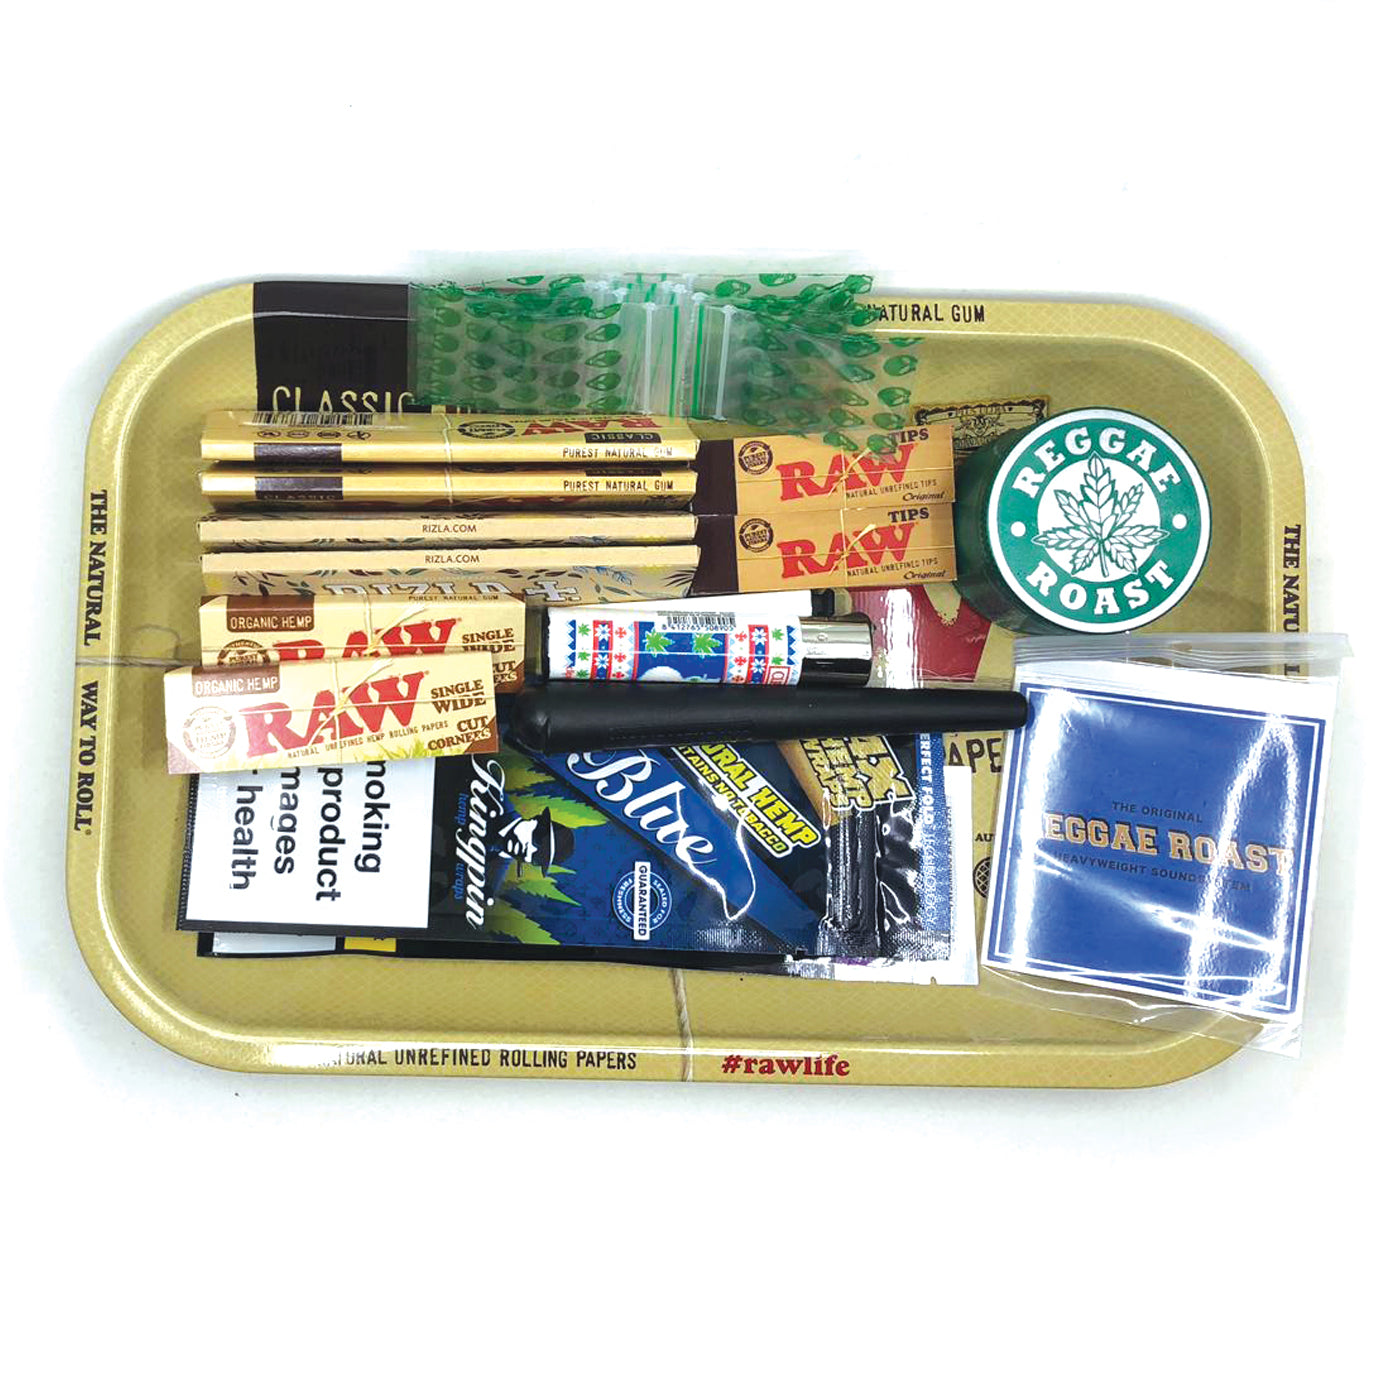 Raw Rolling Tray Bundle (With Reggae Roast Aliminium Grinder)